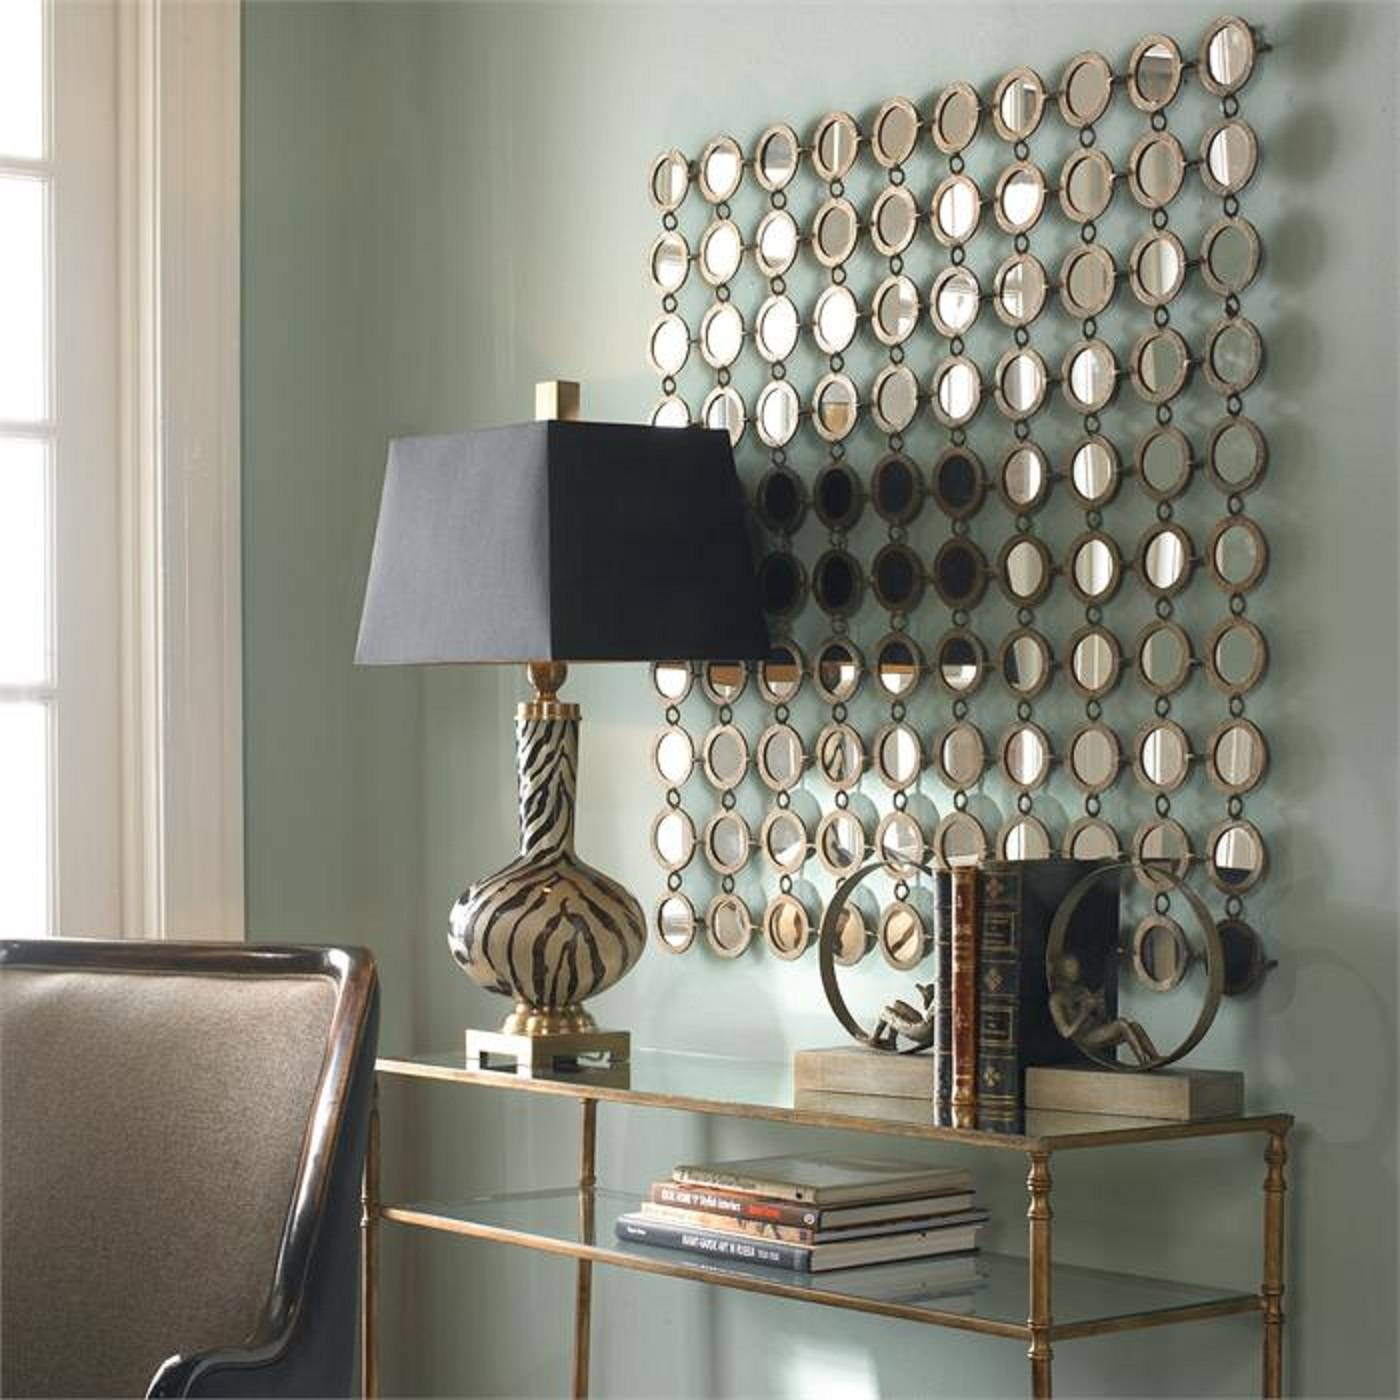 Deluxe Decorative Mirror On Mirrored Wall Decor Mirrored Wall Inside Latest Metal Wall Art With Mirrors (View 3 of 20)